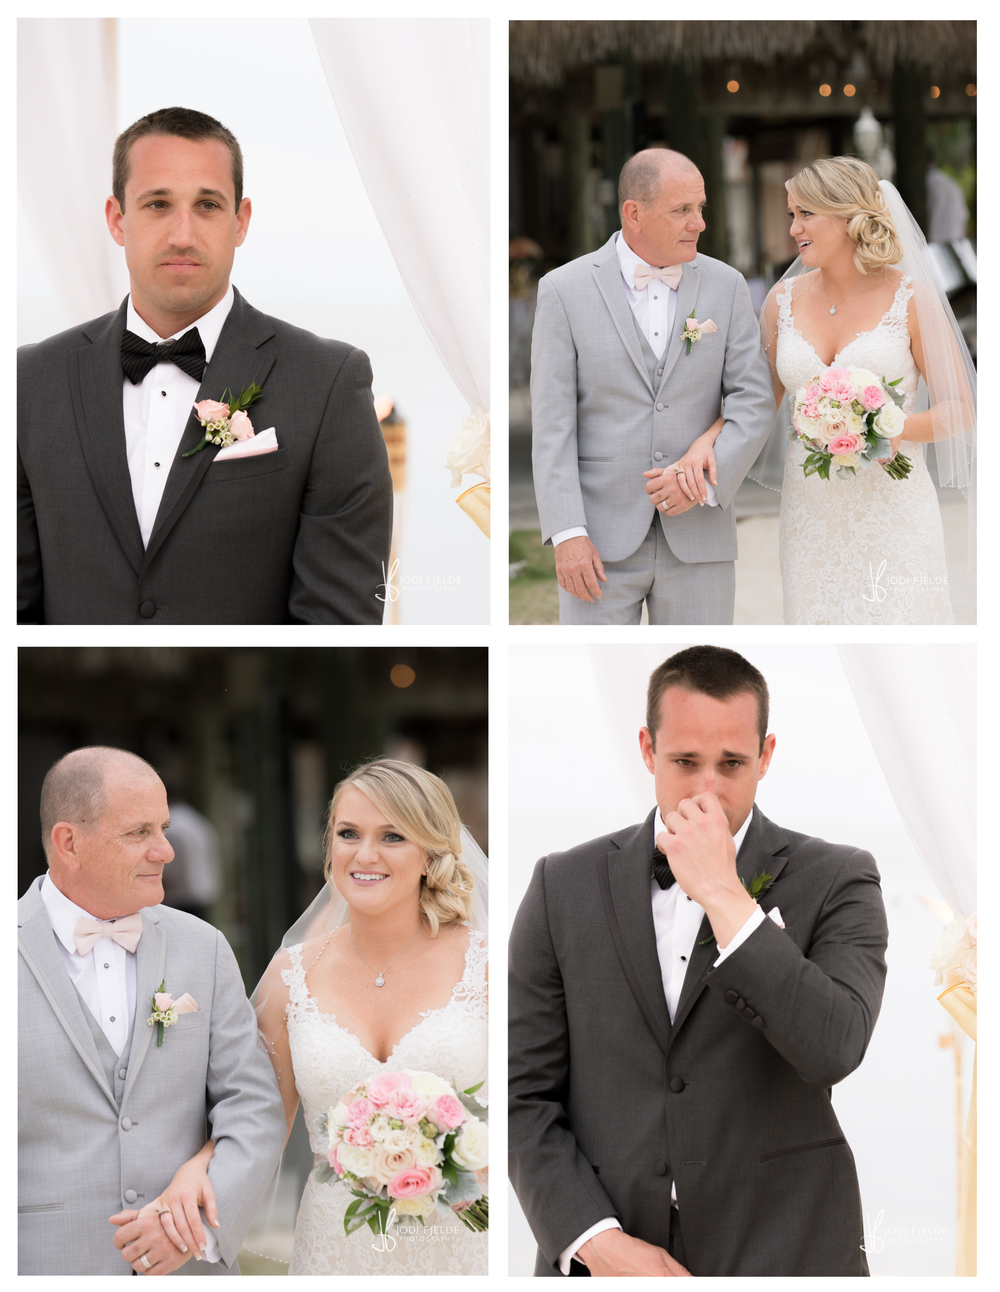 Cocconut_Cove_&_ Marina_ wedding_Kalie_and_Kurt 23.jpg